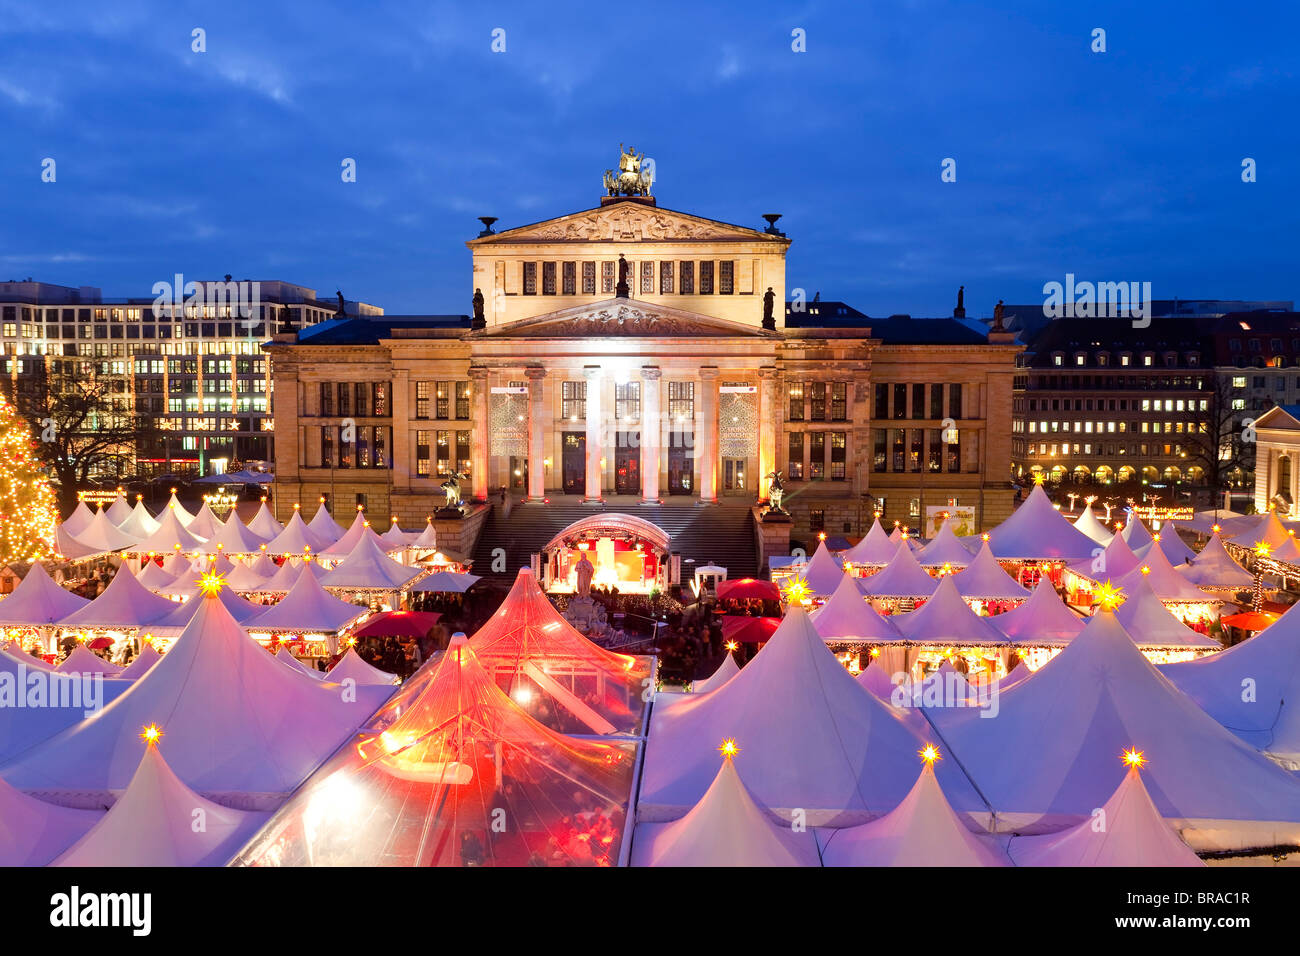 gendarmenmarkt stockfotos gendarmenmarkt bilder alamy. Black Bedroom Furniture Sets. Home Design Ideas